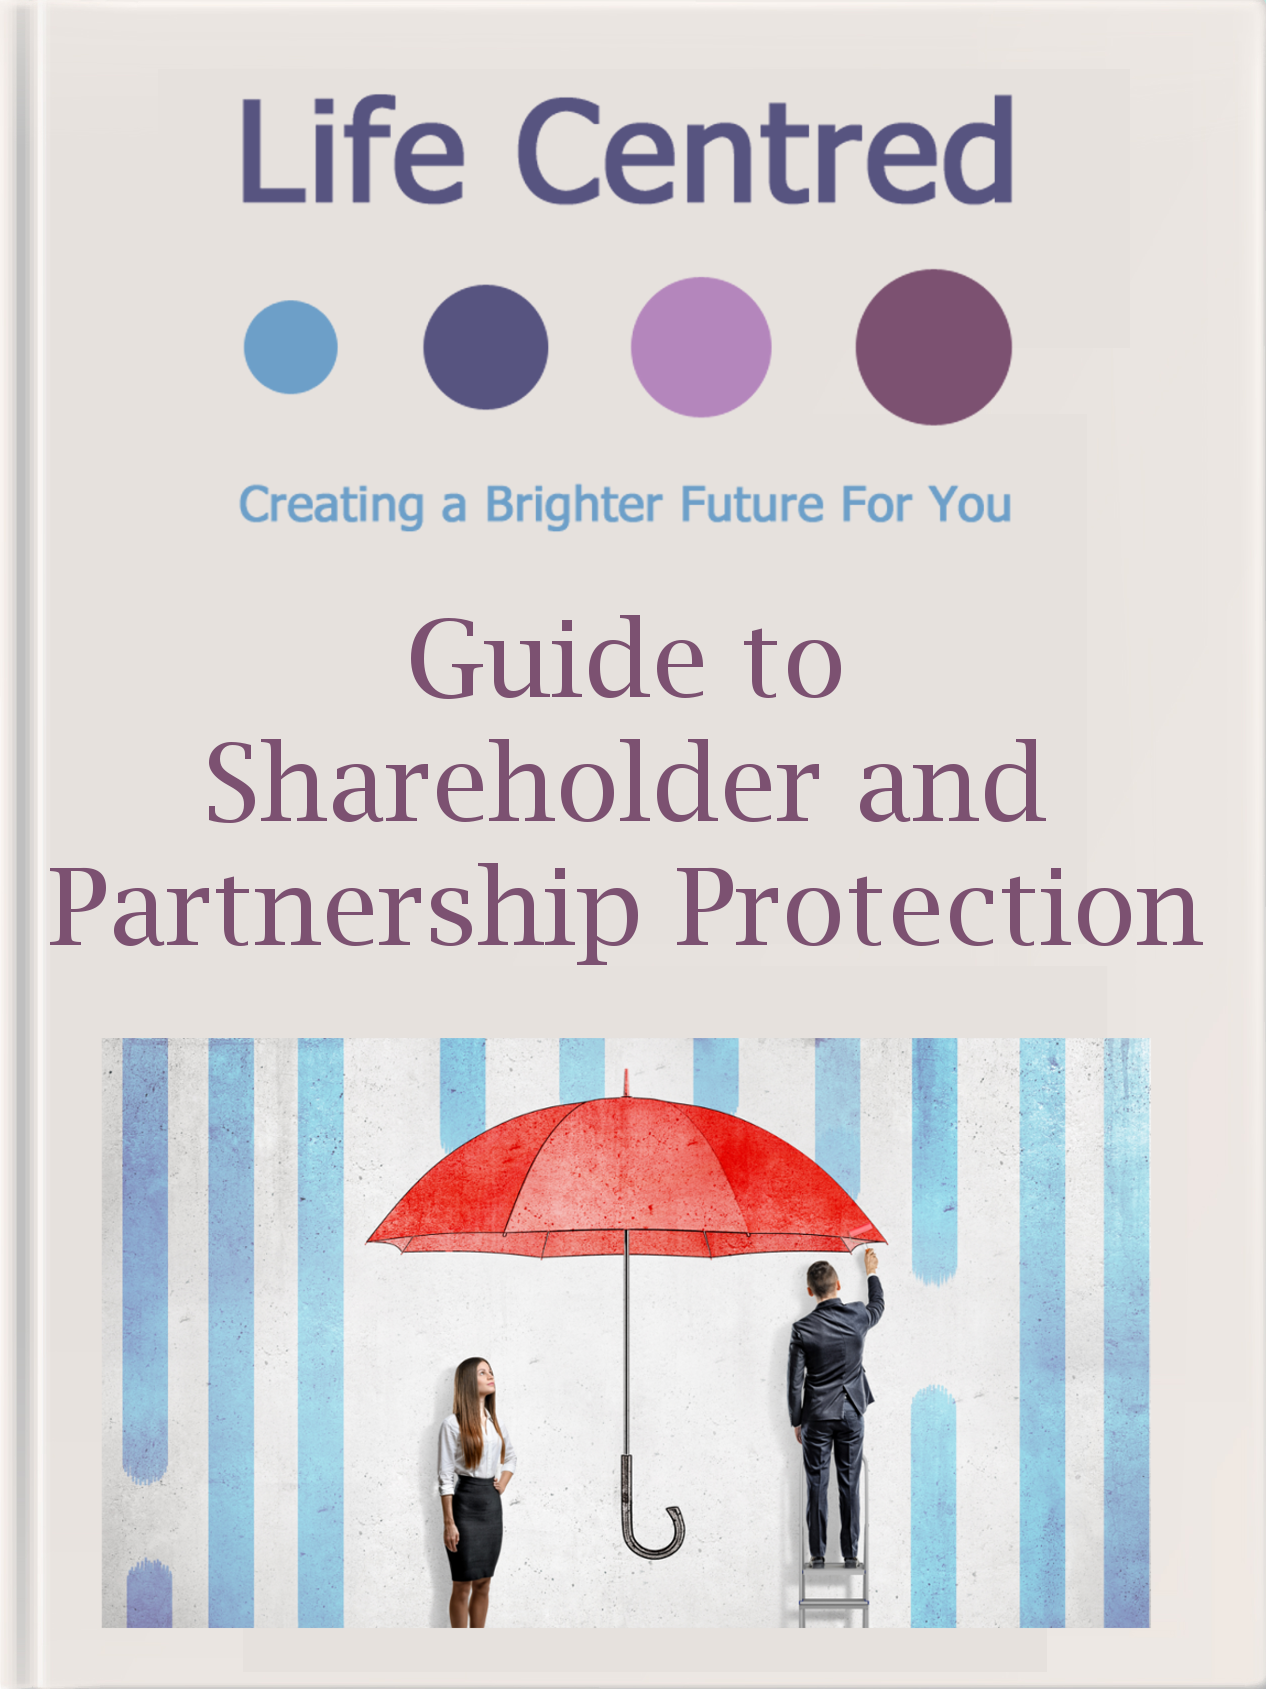 Click to download our Shareholder and Partnership Protection Guide